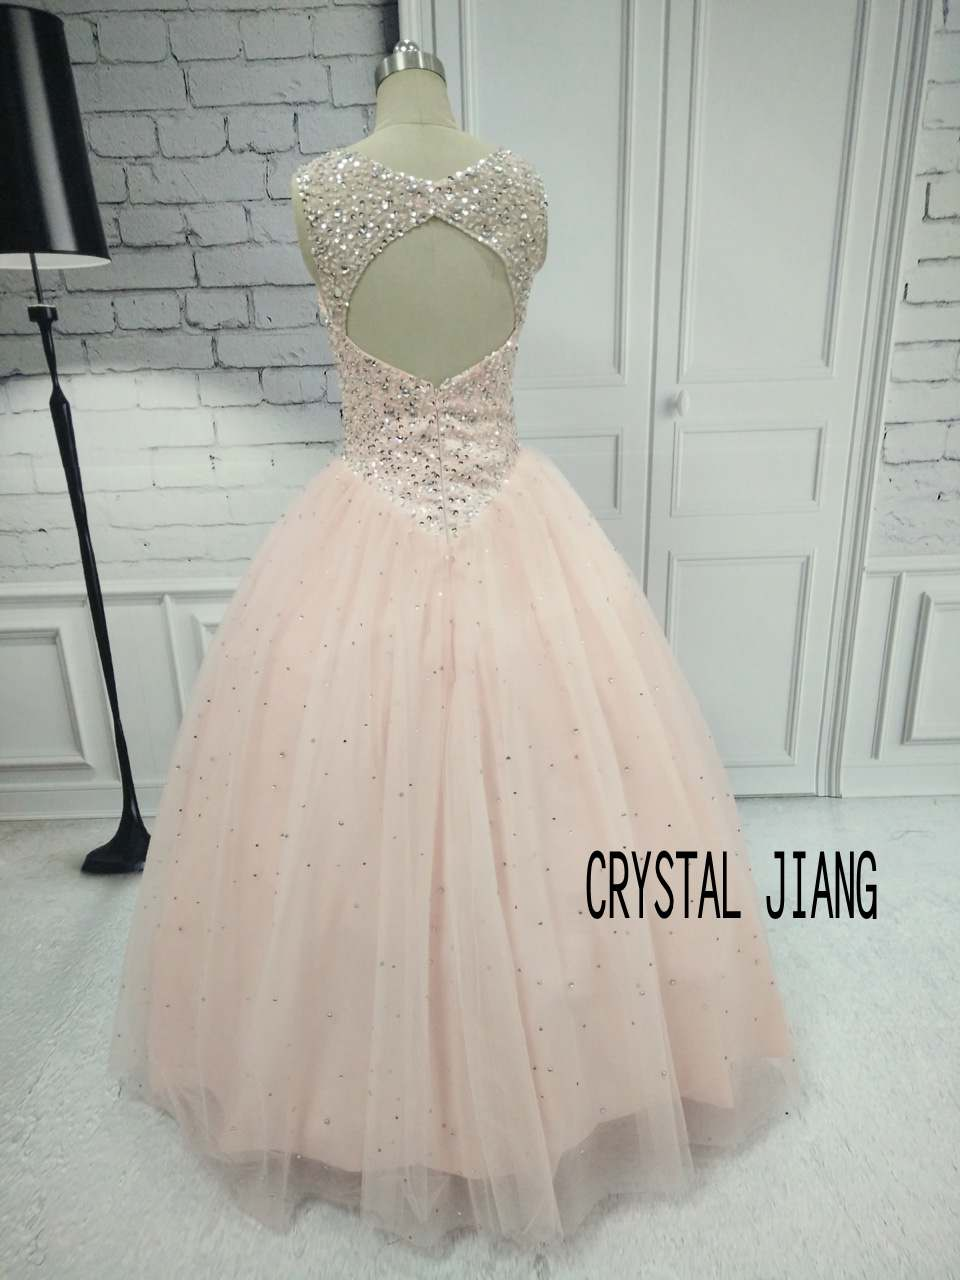 CRYSTAL JIANG Formal Ball Gown Quinceanera Navy blue Tulle Dress Custom made Heavy Beadings Bling Bling Floor Length Gowns